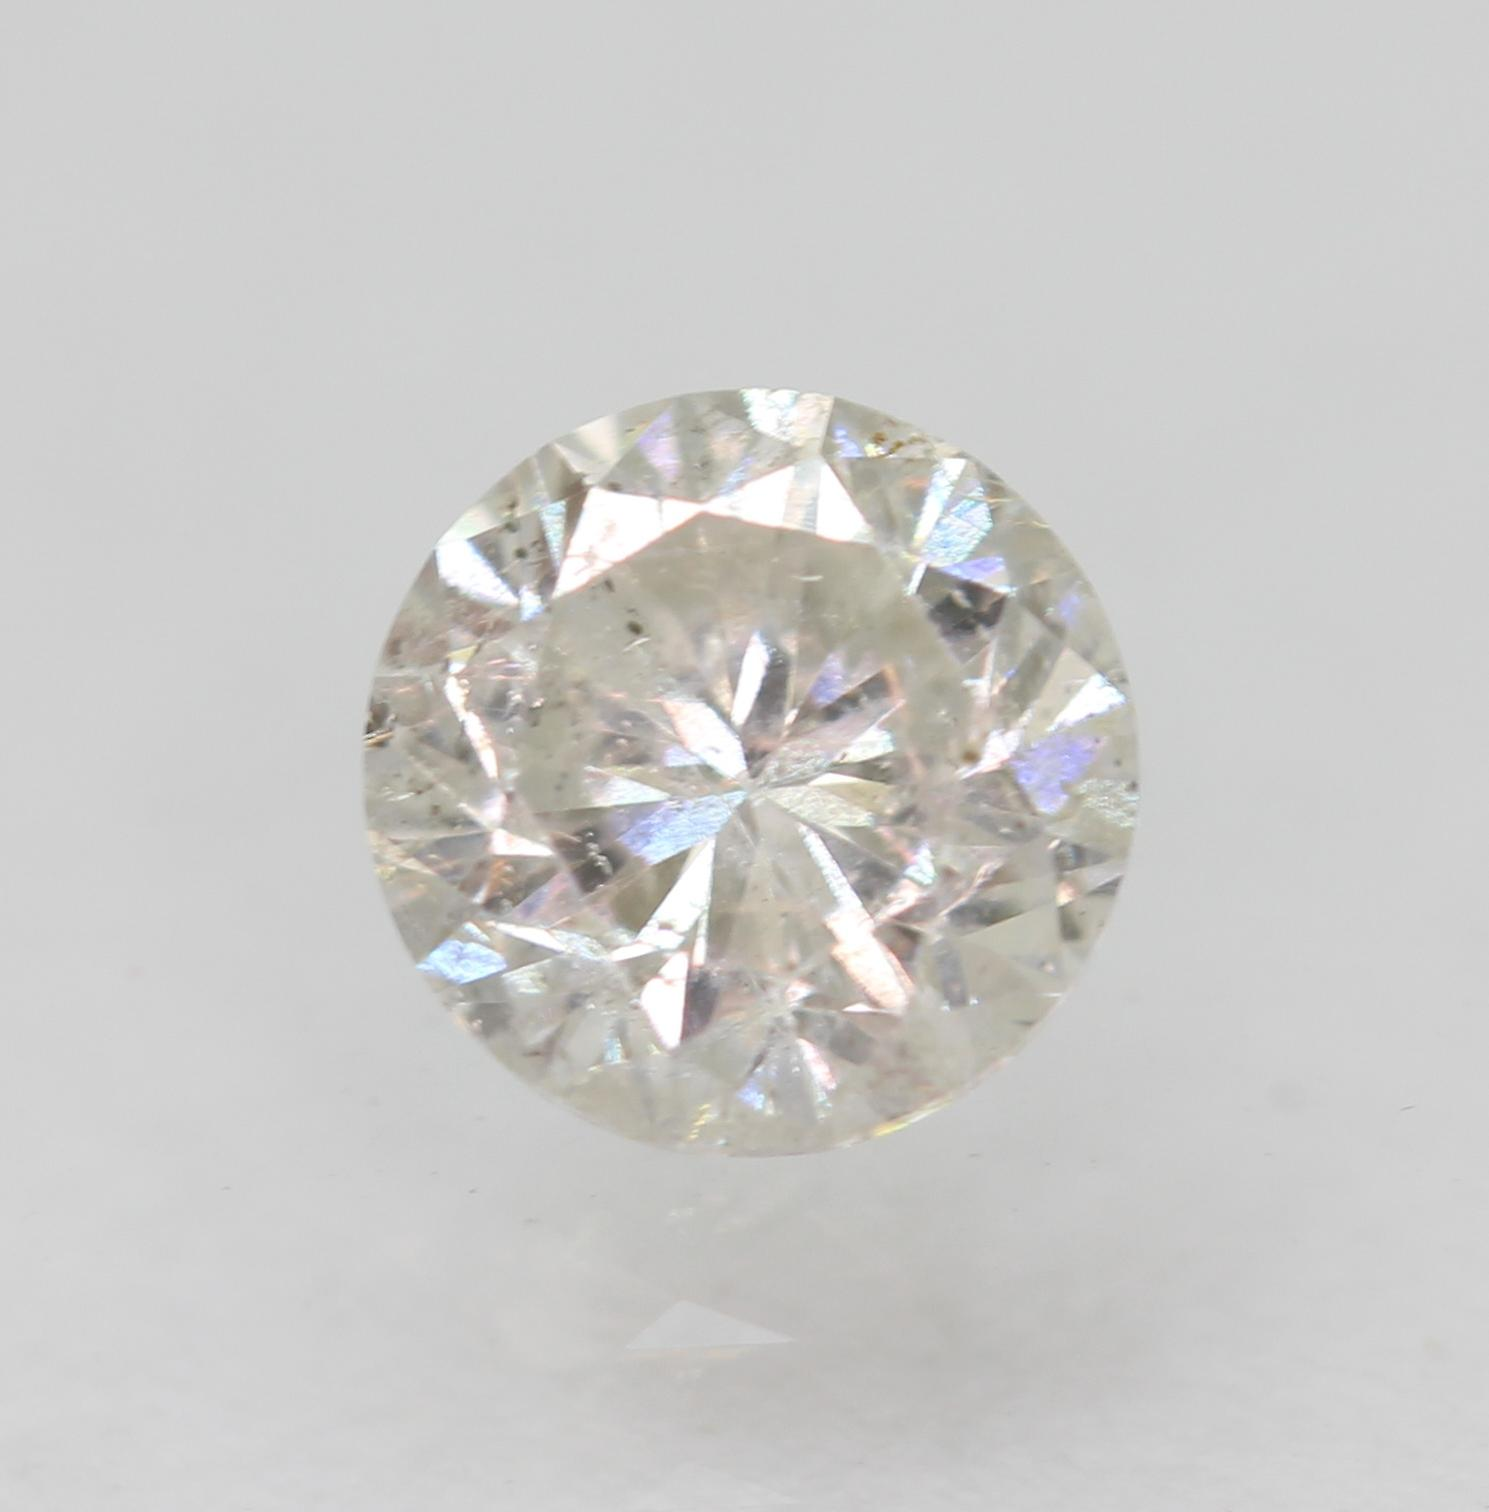 Certified 0.51 Carat G SI1 Round Brilliant Enhanced Natural Loose Diamond 4.88mm